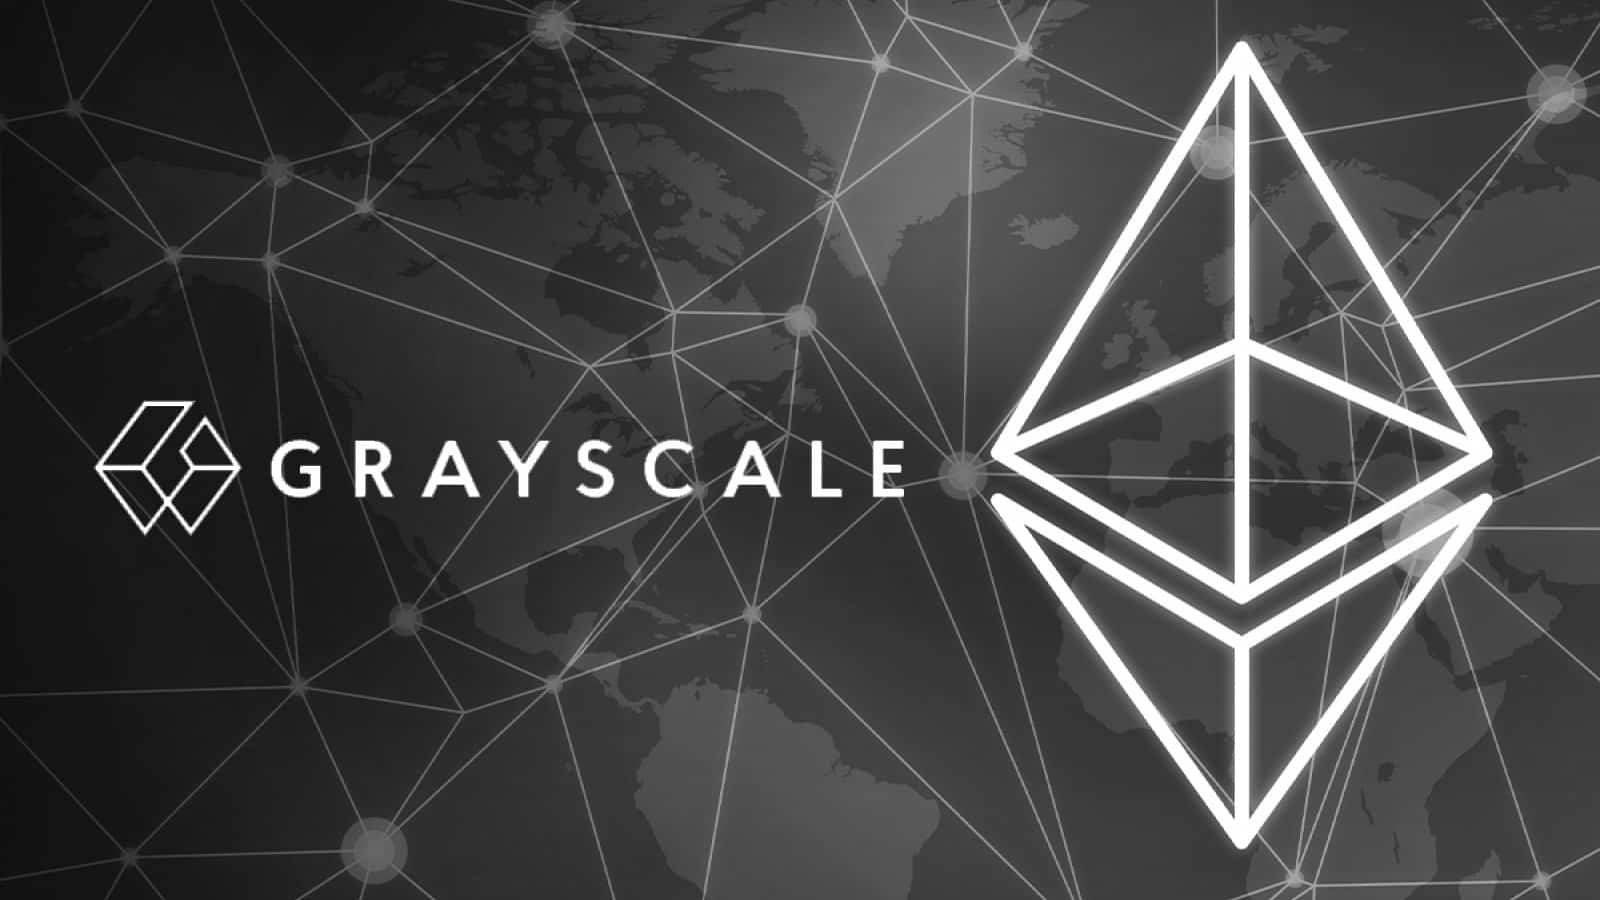 Grayscale massive cryptocurrency purchases continue as the AUM has grown by 50% in a month to $30 billion - AZCoin News